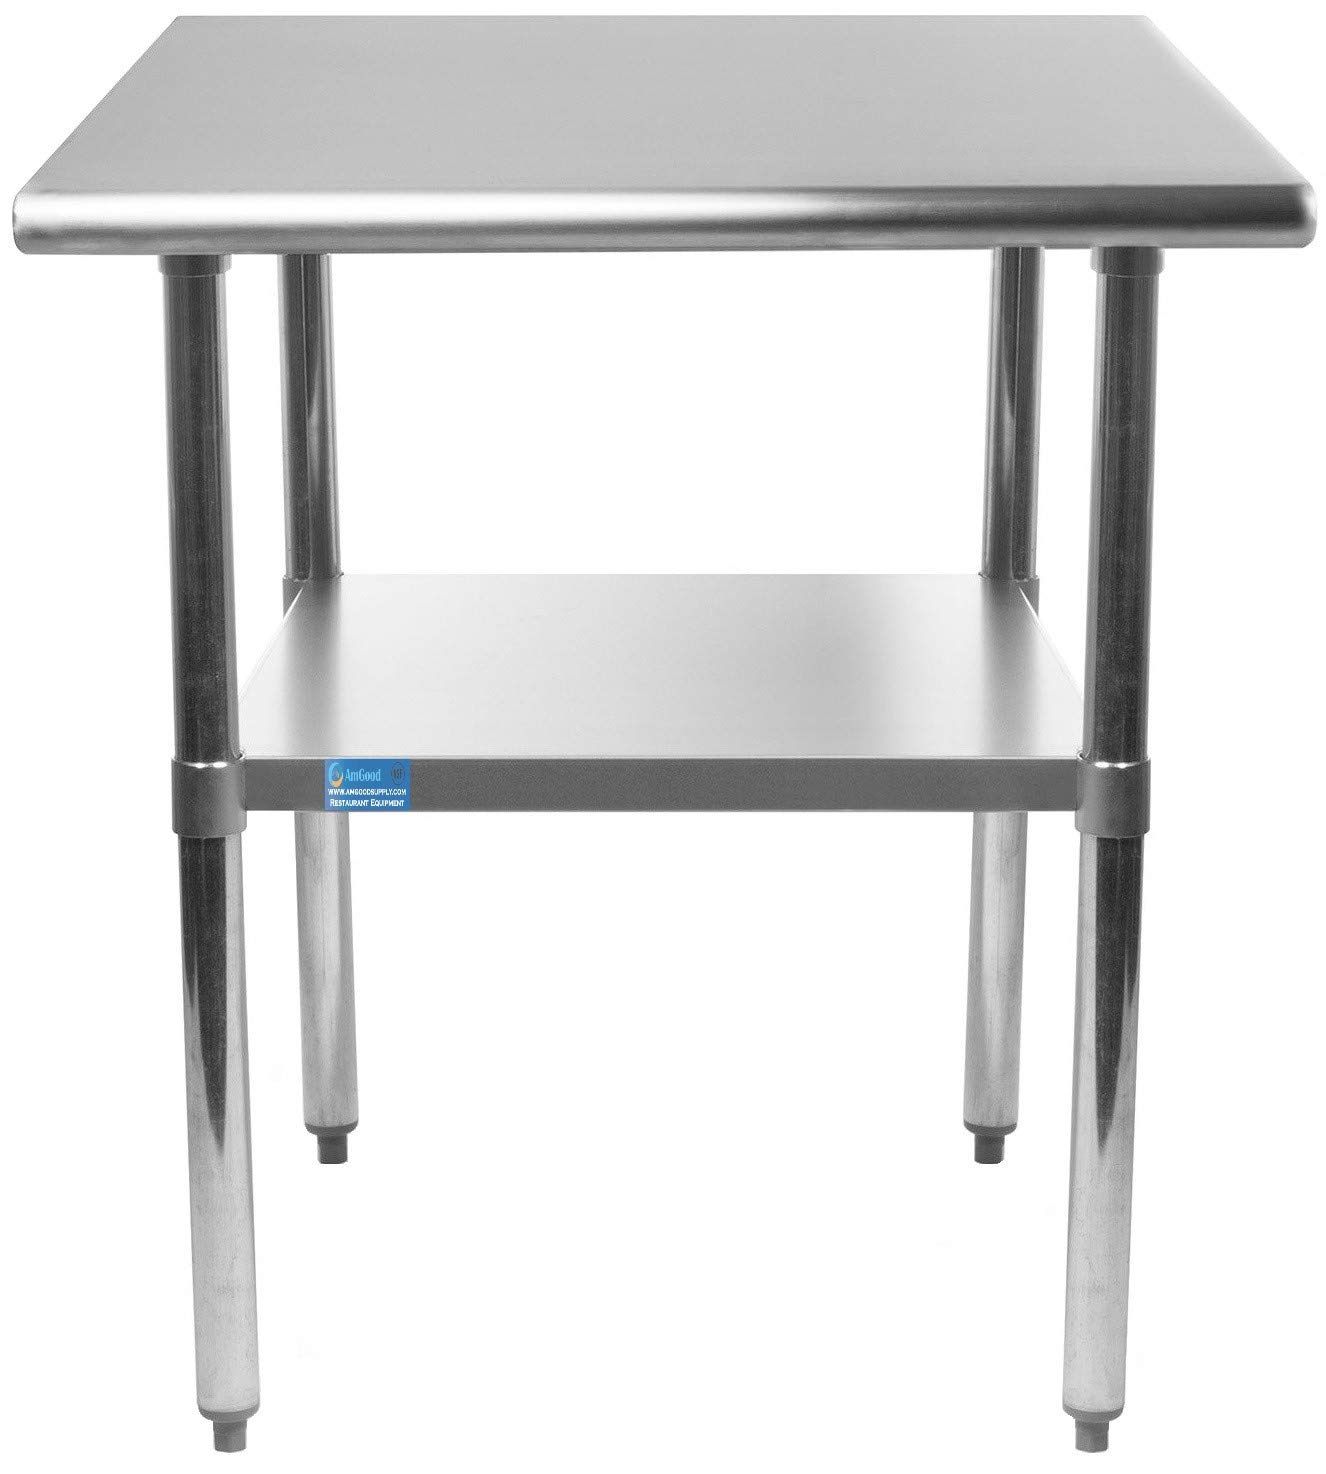 AmGood 24 X 24 Stainless Steel Work Table with Undershelf | NSF Certified | Kitchen Island | Restaurant Food Prep | Laundry Utility Bench | Garage Work Station